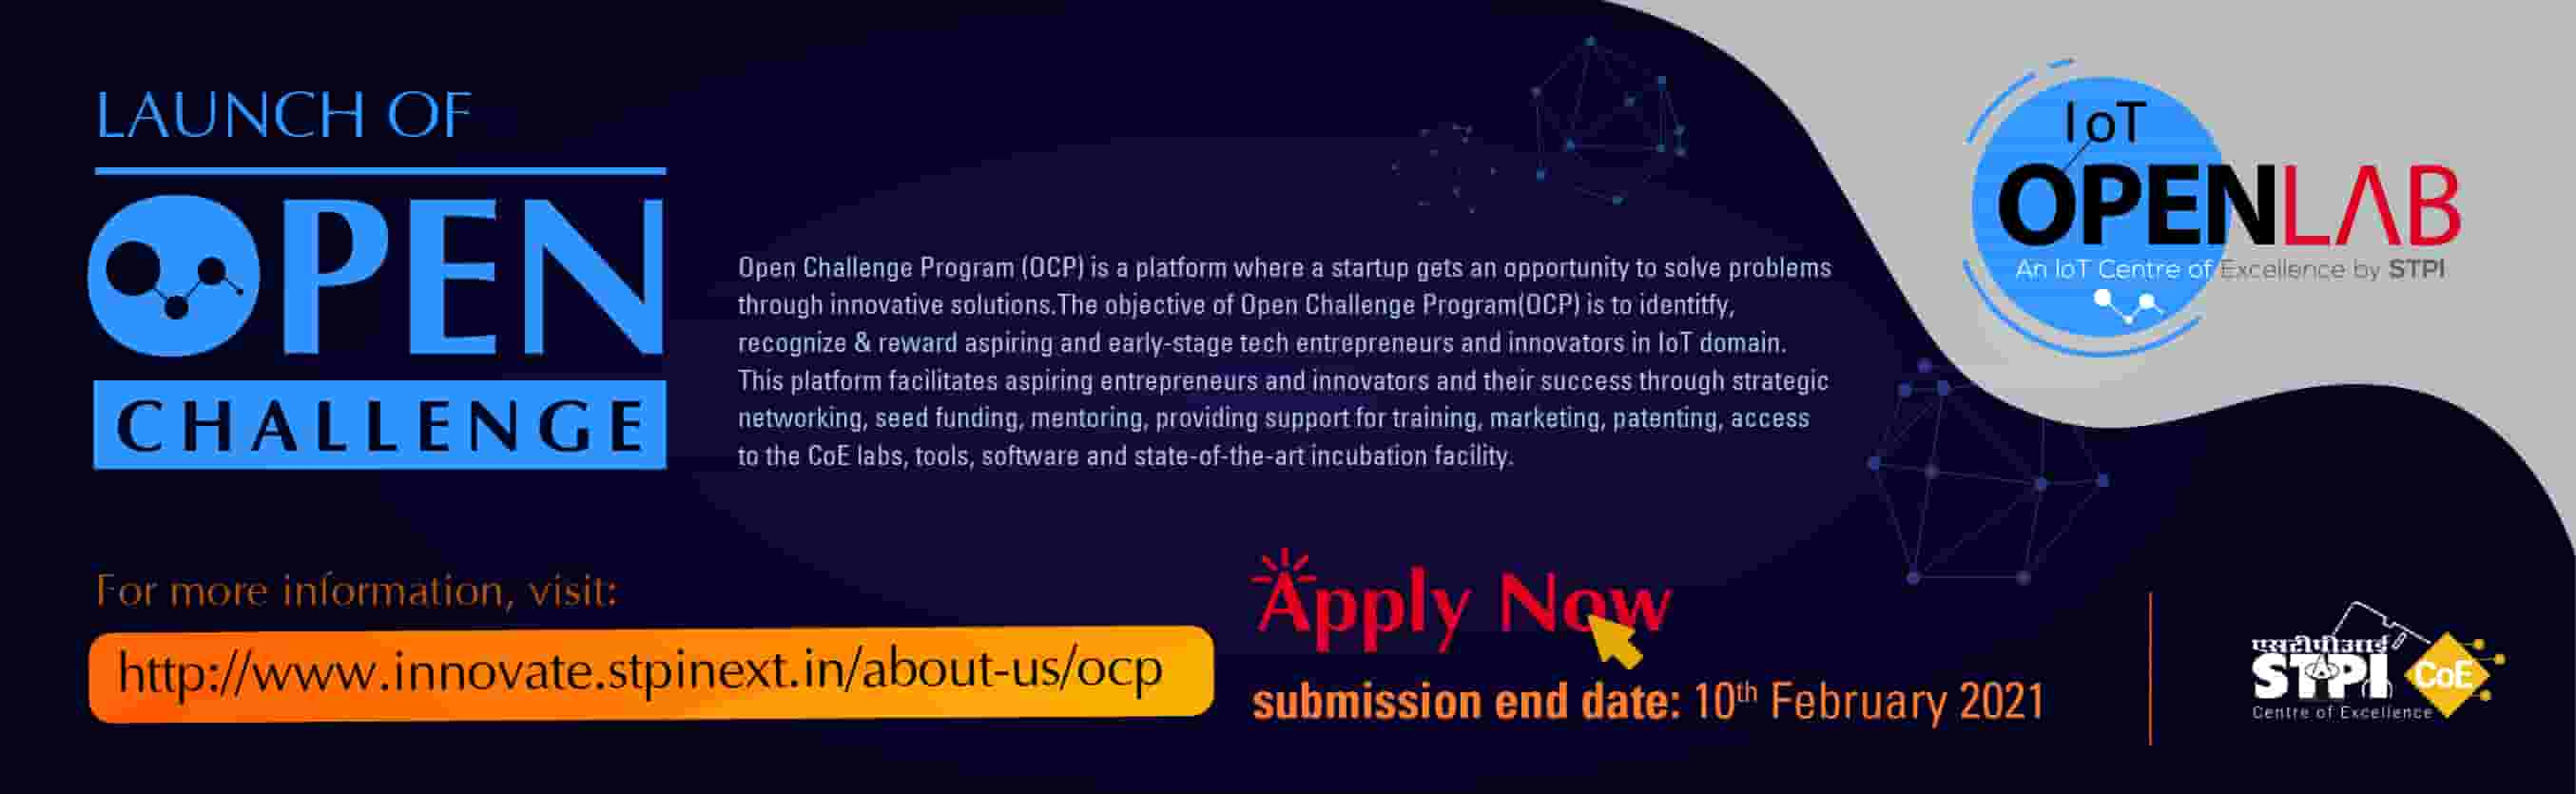 STPI and MeitY IoT Open Challenge Program- Govt. of India